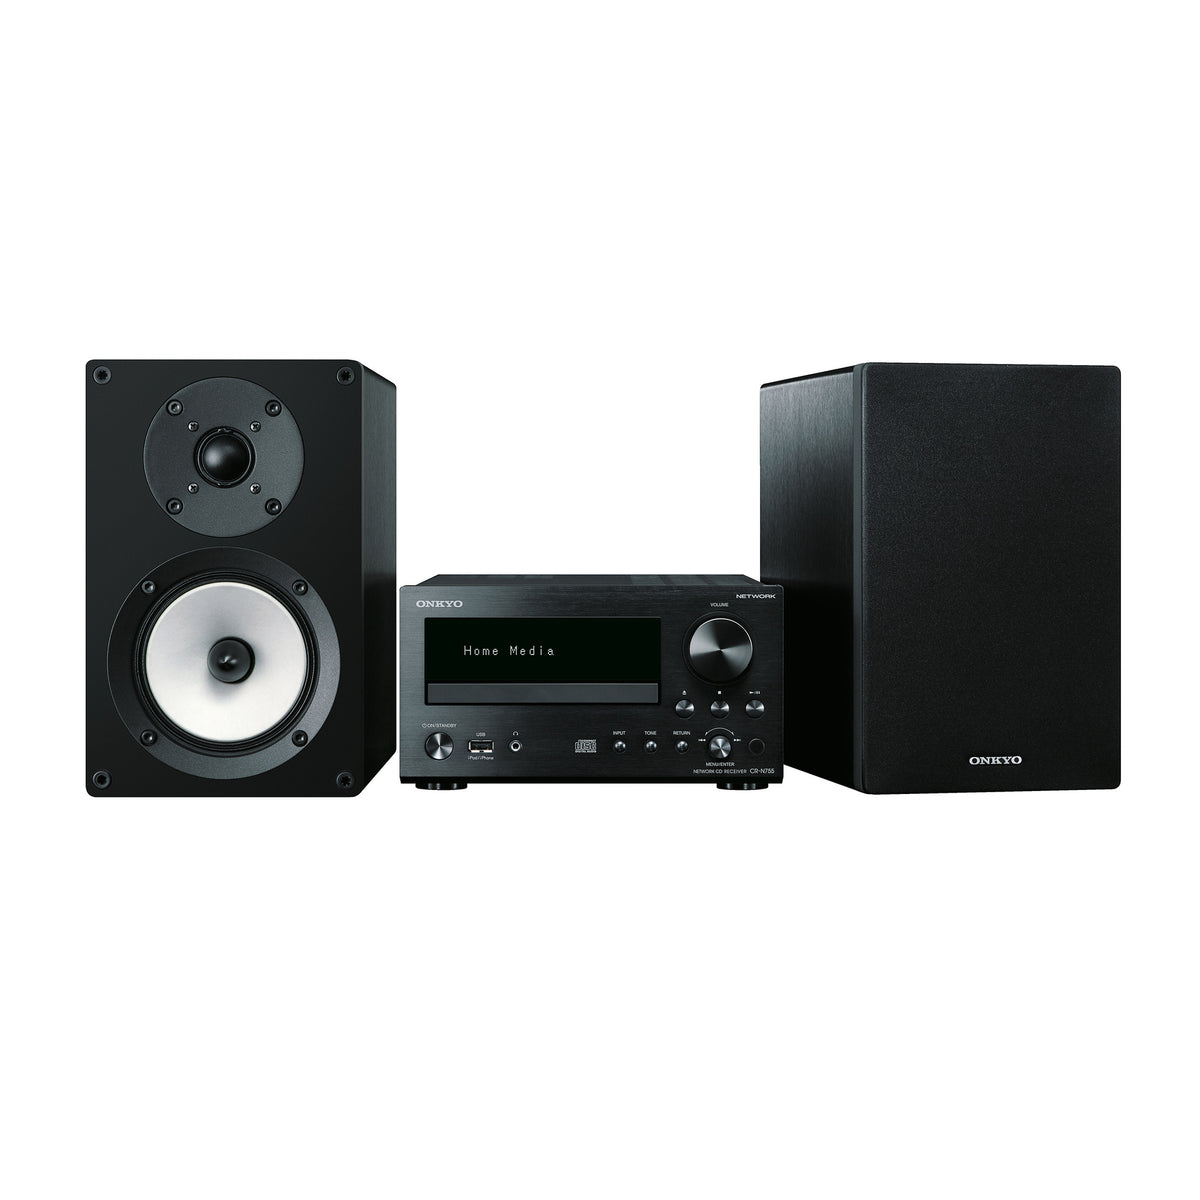 Onkyo: CS-N755 Network Hi-Fi Mini System